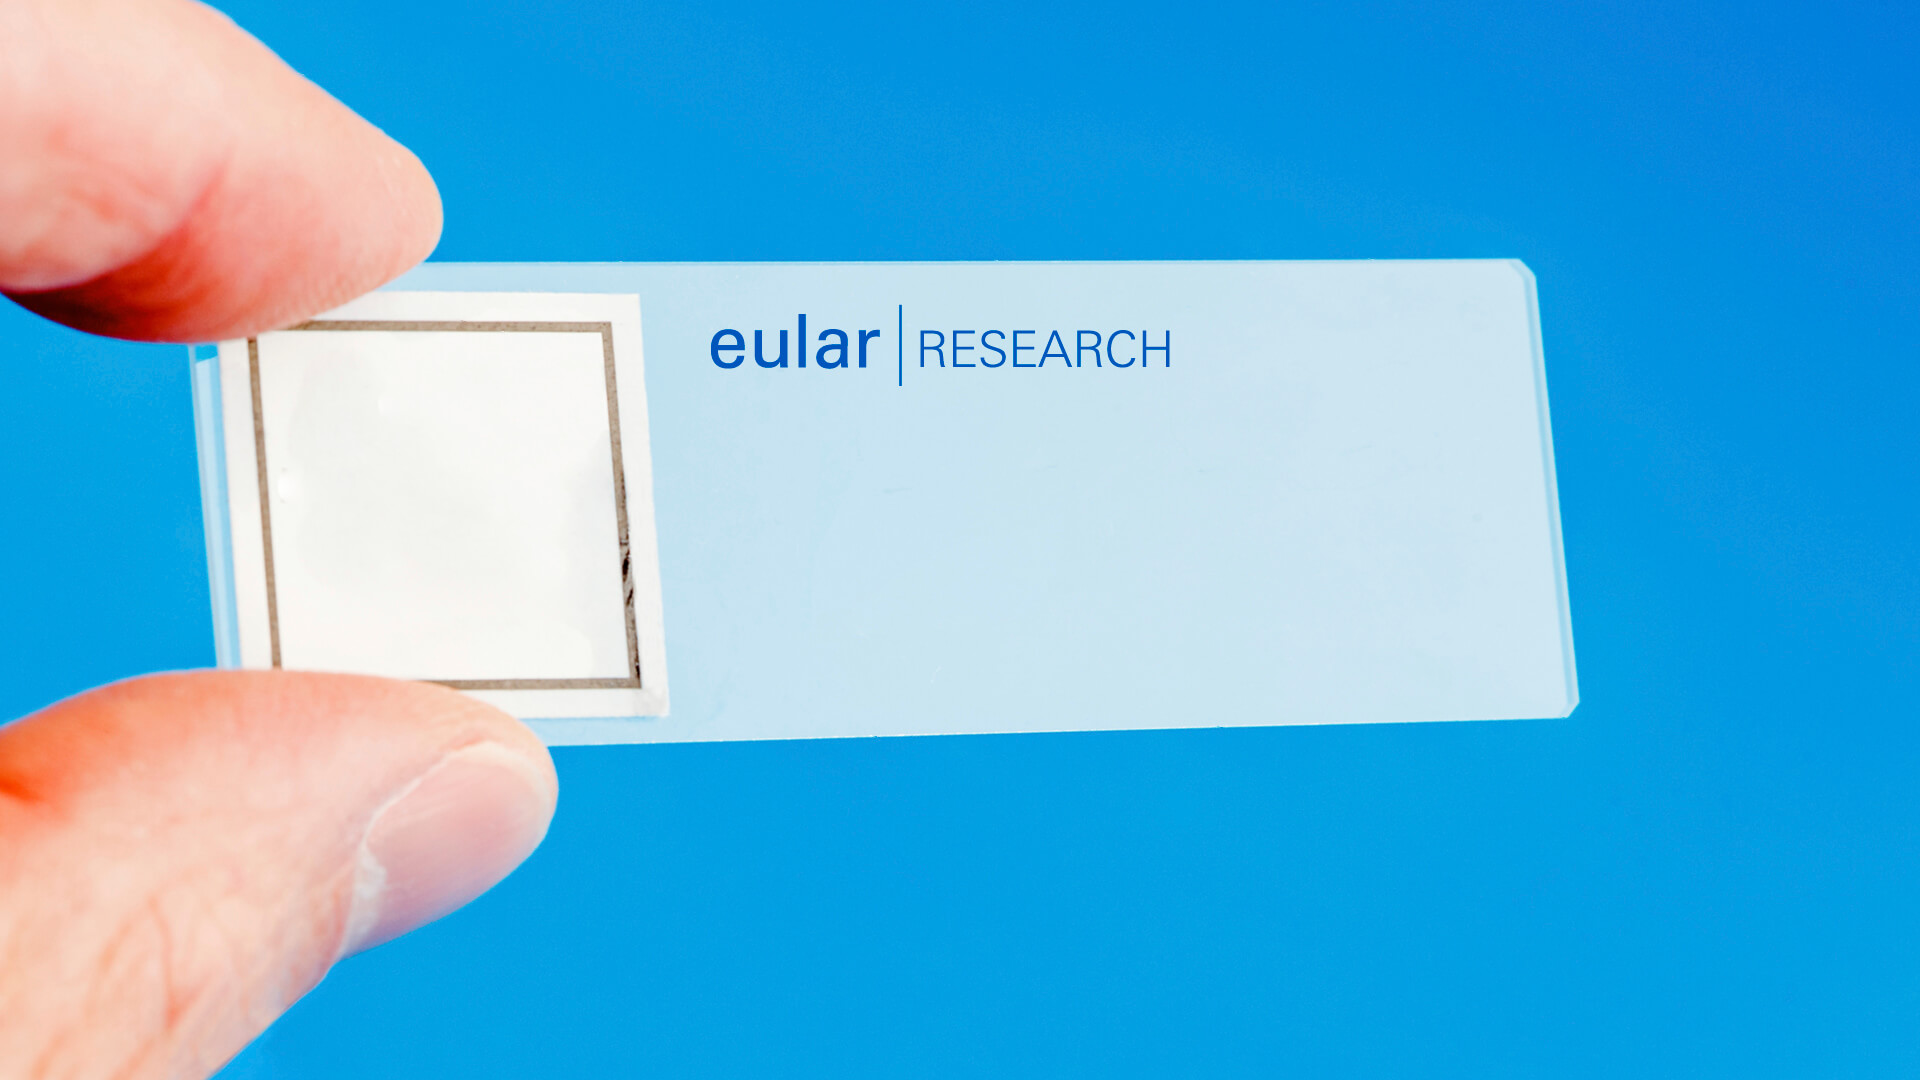 10_research_1_EULAR_strategy_slides_2021.jpg